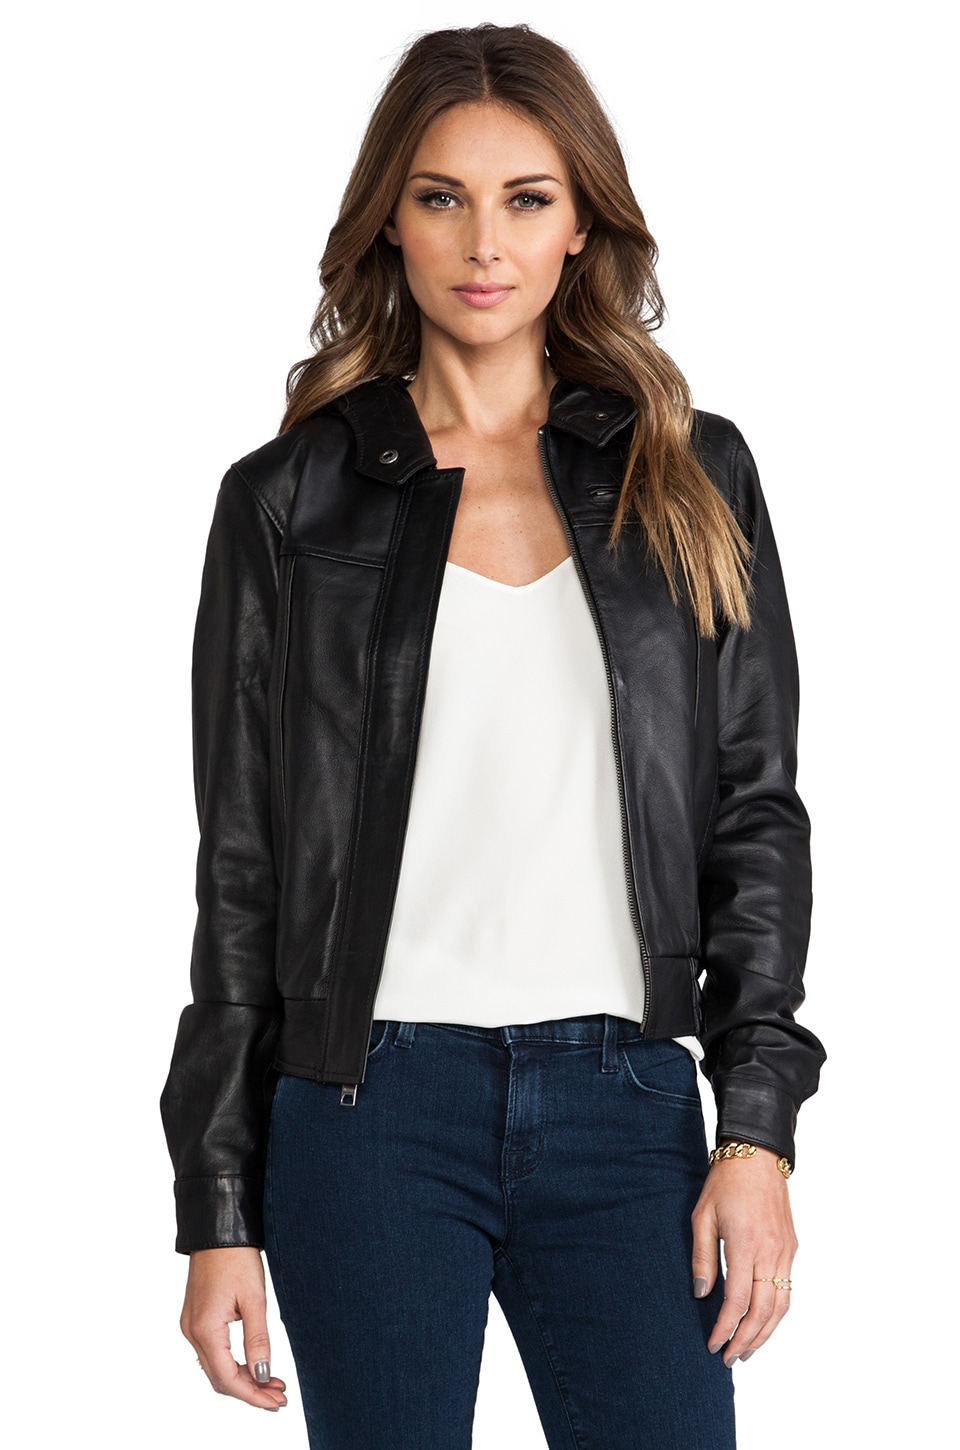 Viparo Autumn Leather Hooded Bomber Jacket in Black